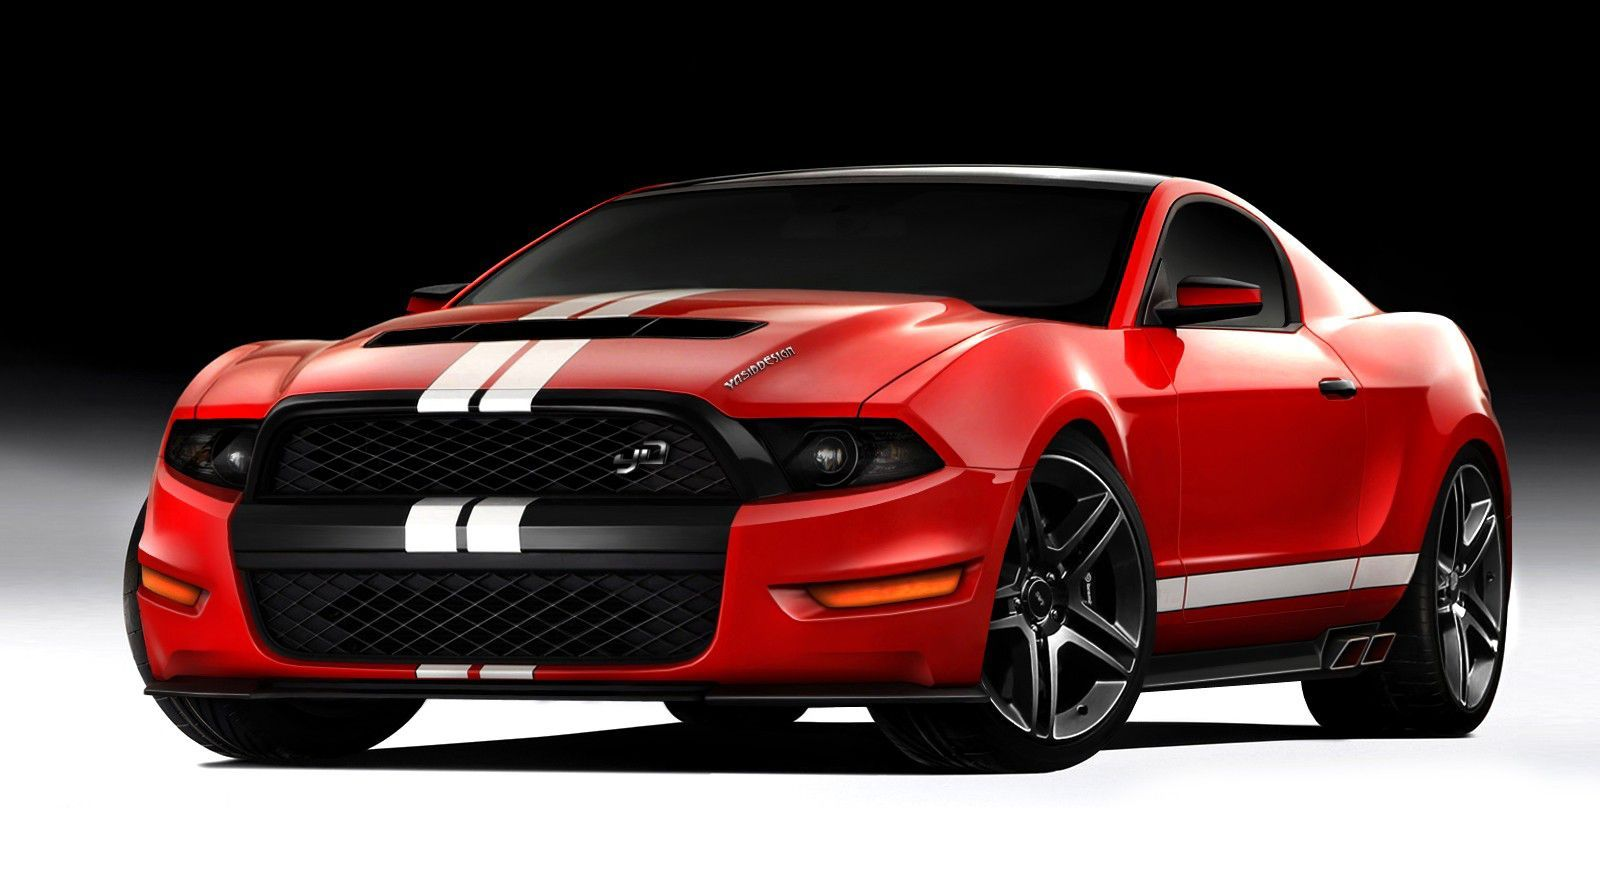 ford gt 2015 high resolution wallpaper httphdcarwallfxcomford 2014 ford mustangford - Mustang 2014 Black Wallpaper